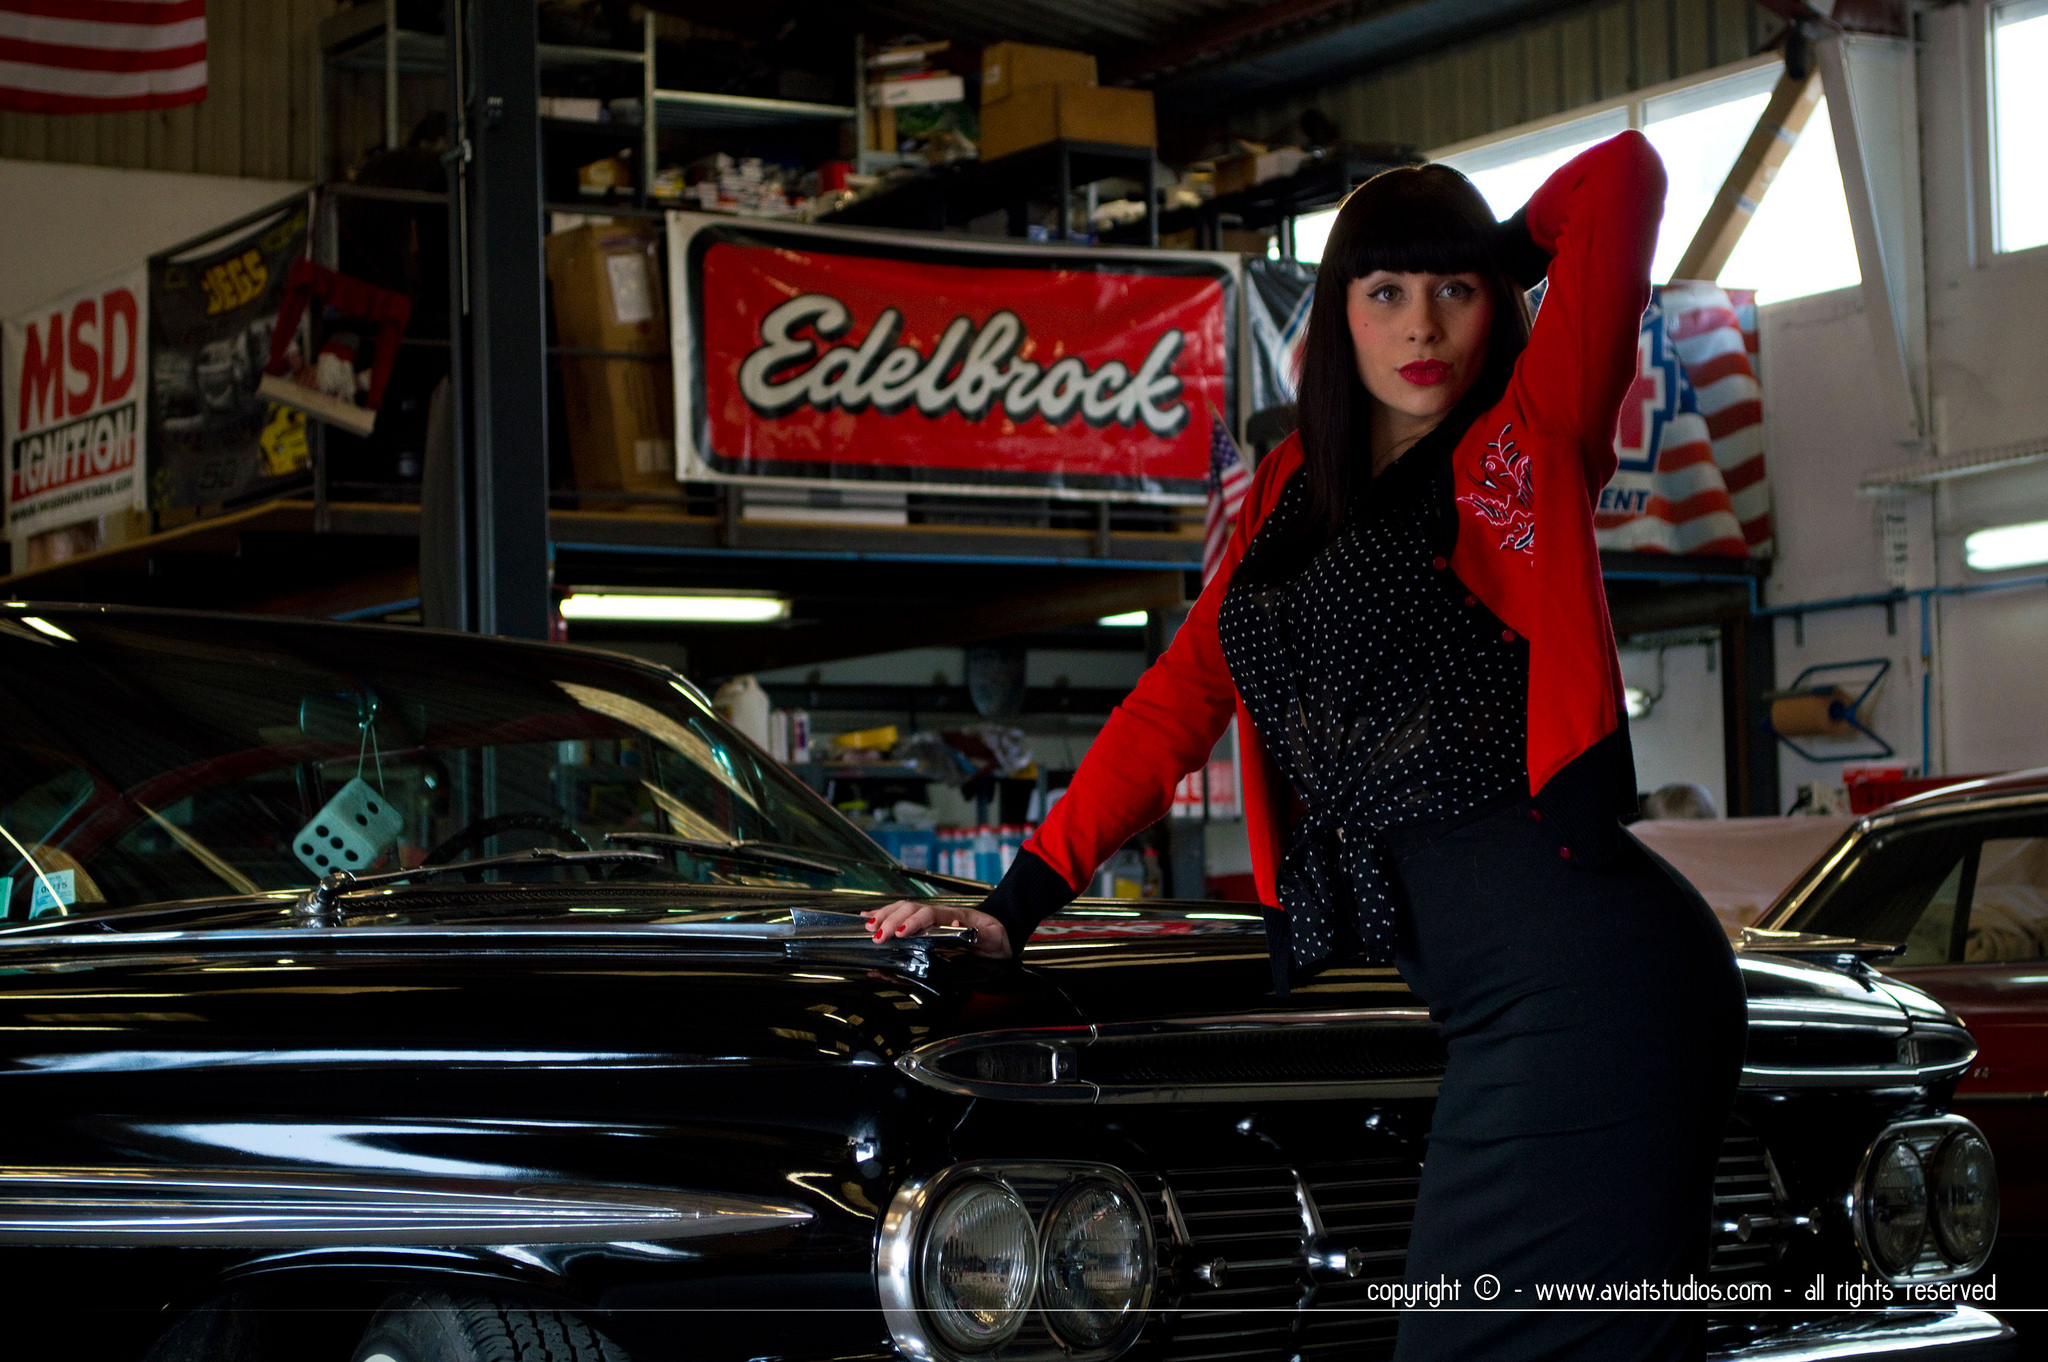 Vintage Cars + Pin-up - aviatstudios.com